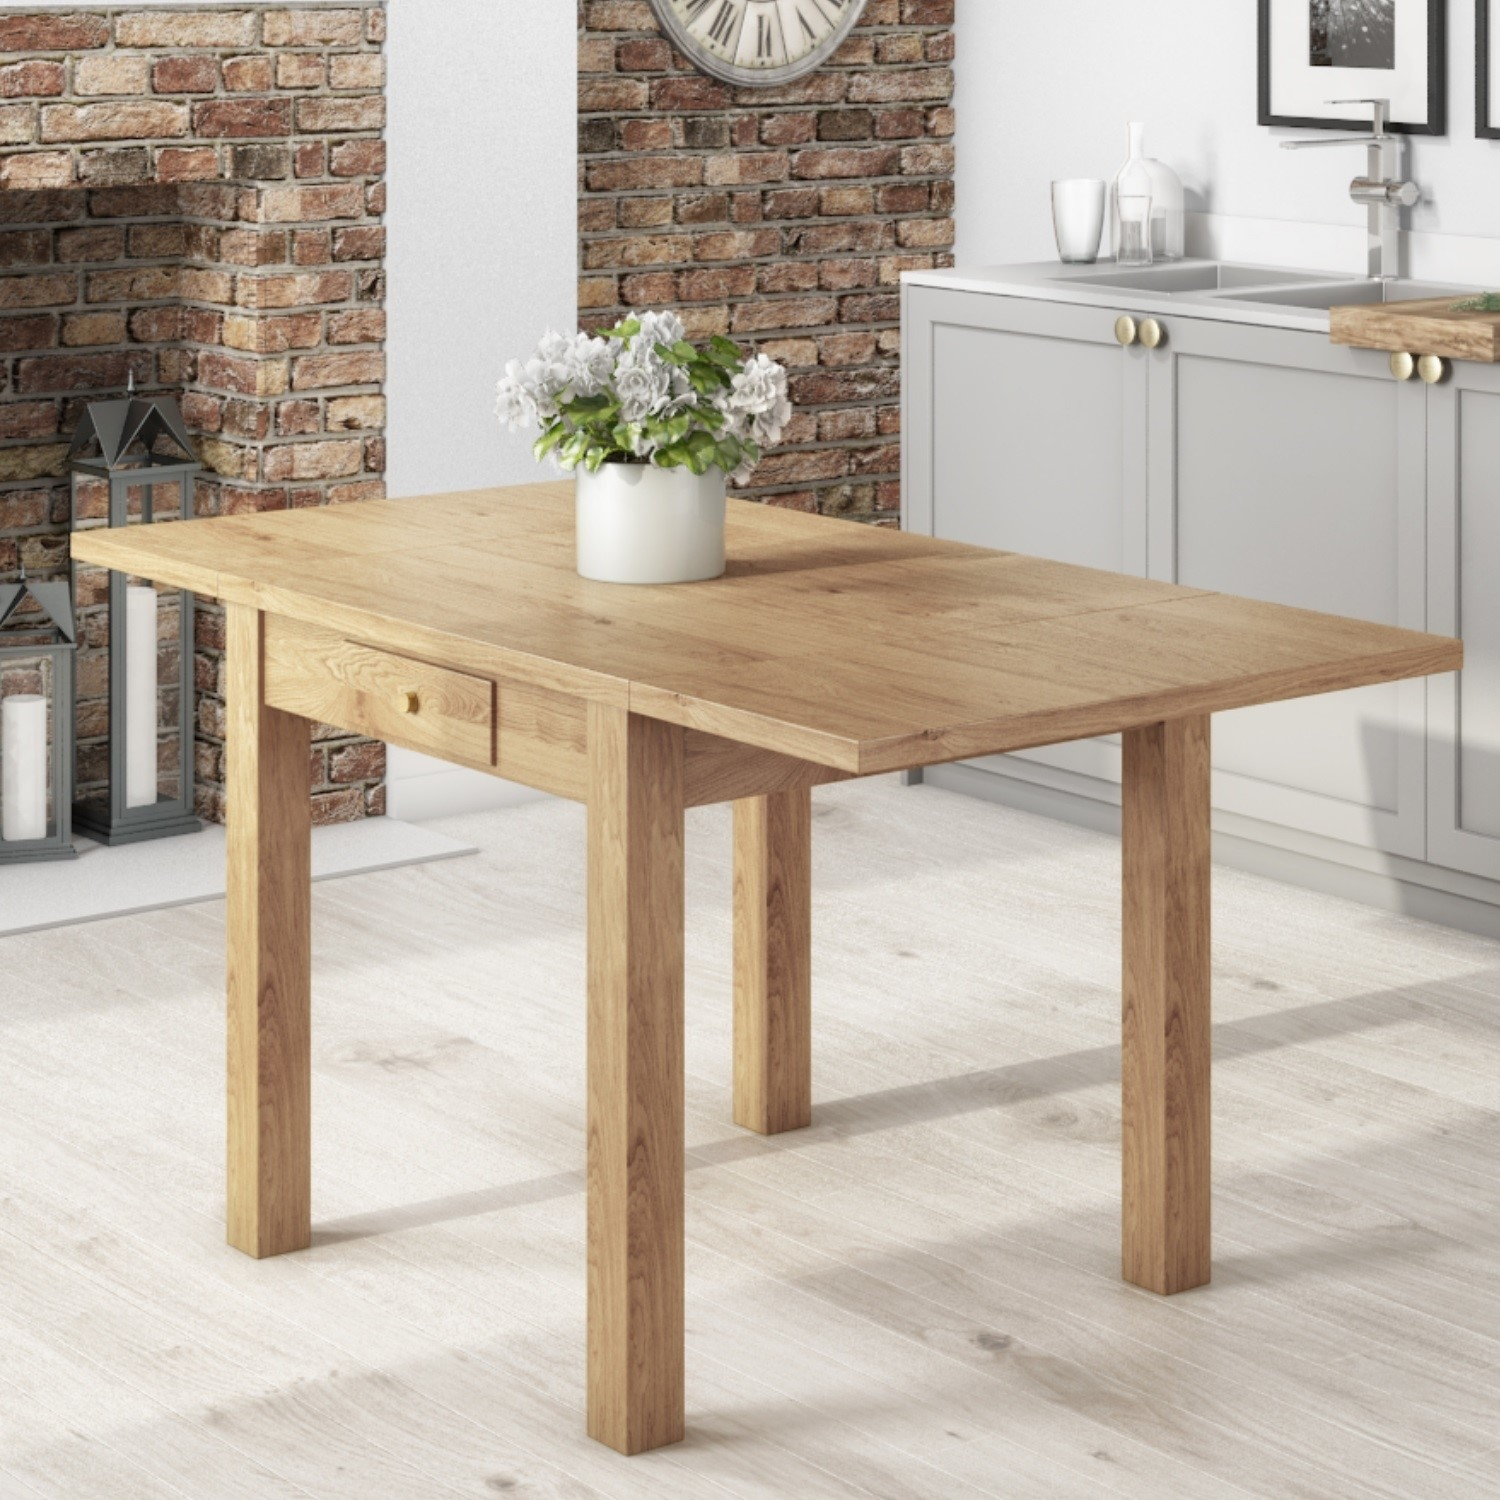 Stupendous Emerson Extendable Solid Wood Drop Leaf Dining Table Seats 4 6 Home Interior And Landscaping Ologienasavecom